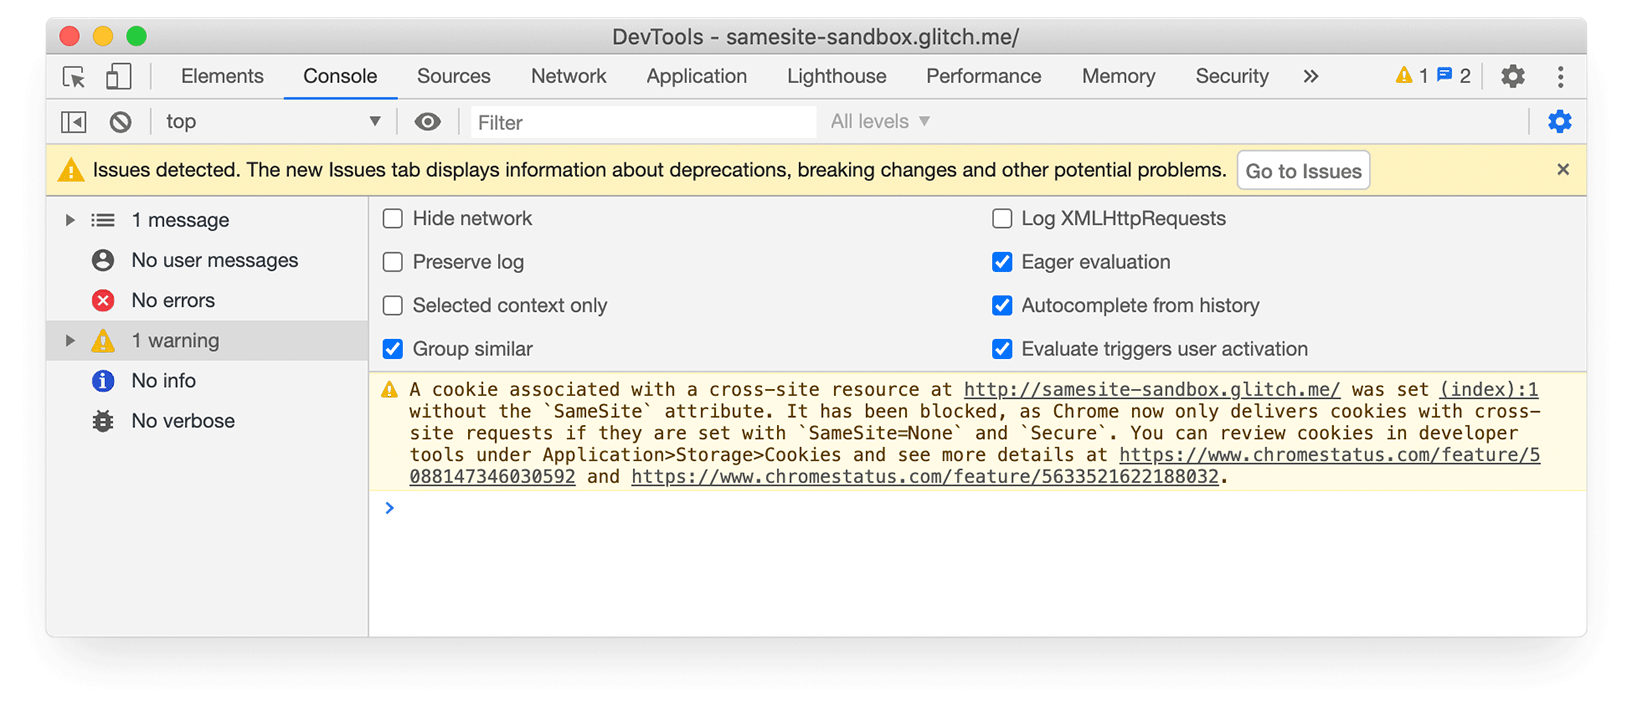 Chrome DevTools screenshot showing yellow warning bar for Issues detected.